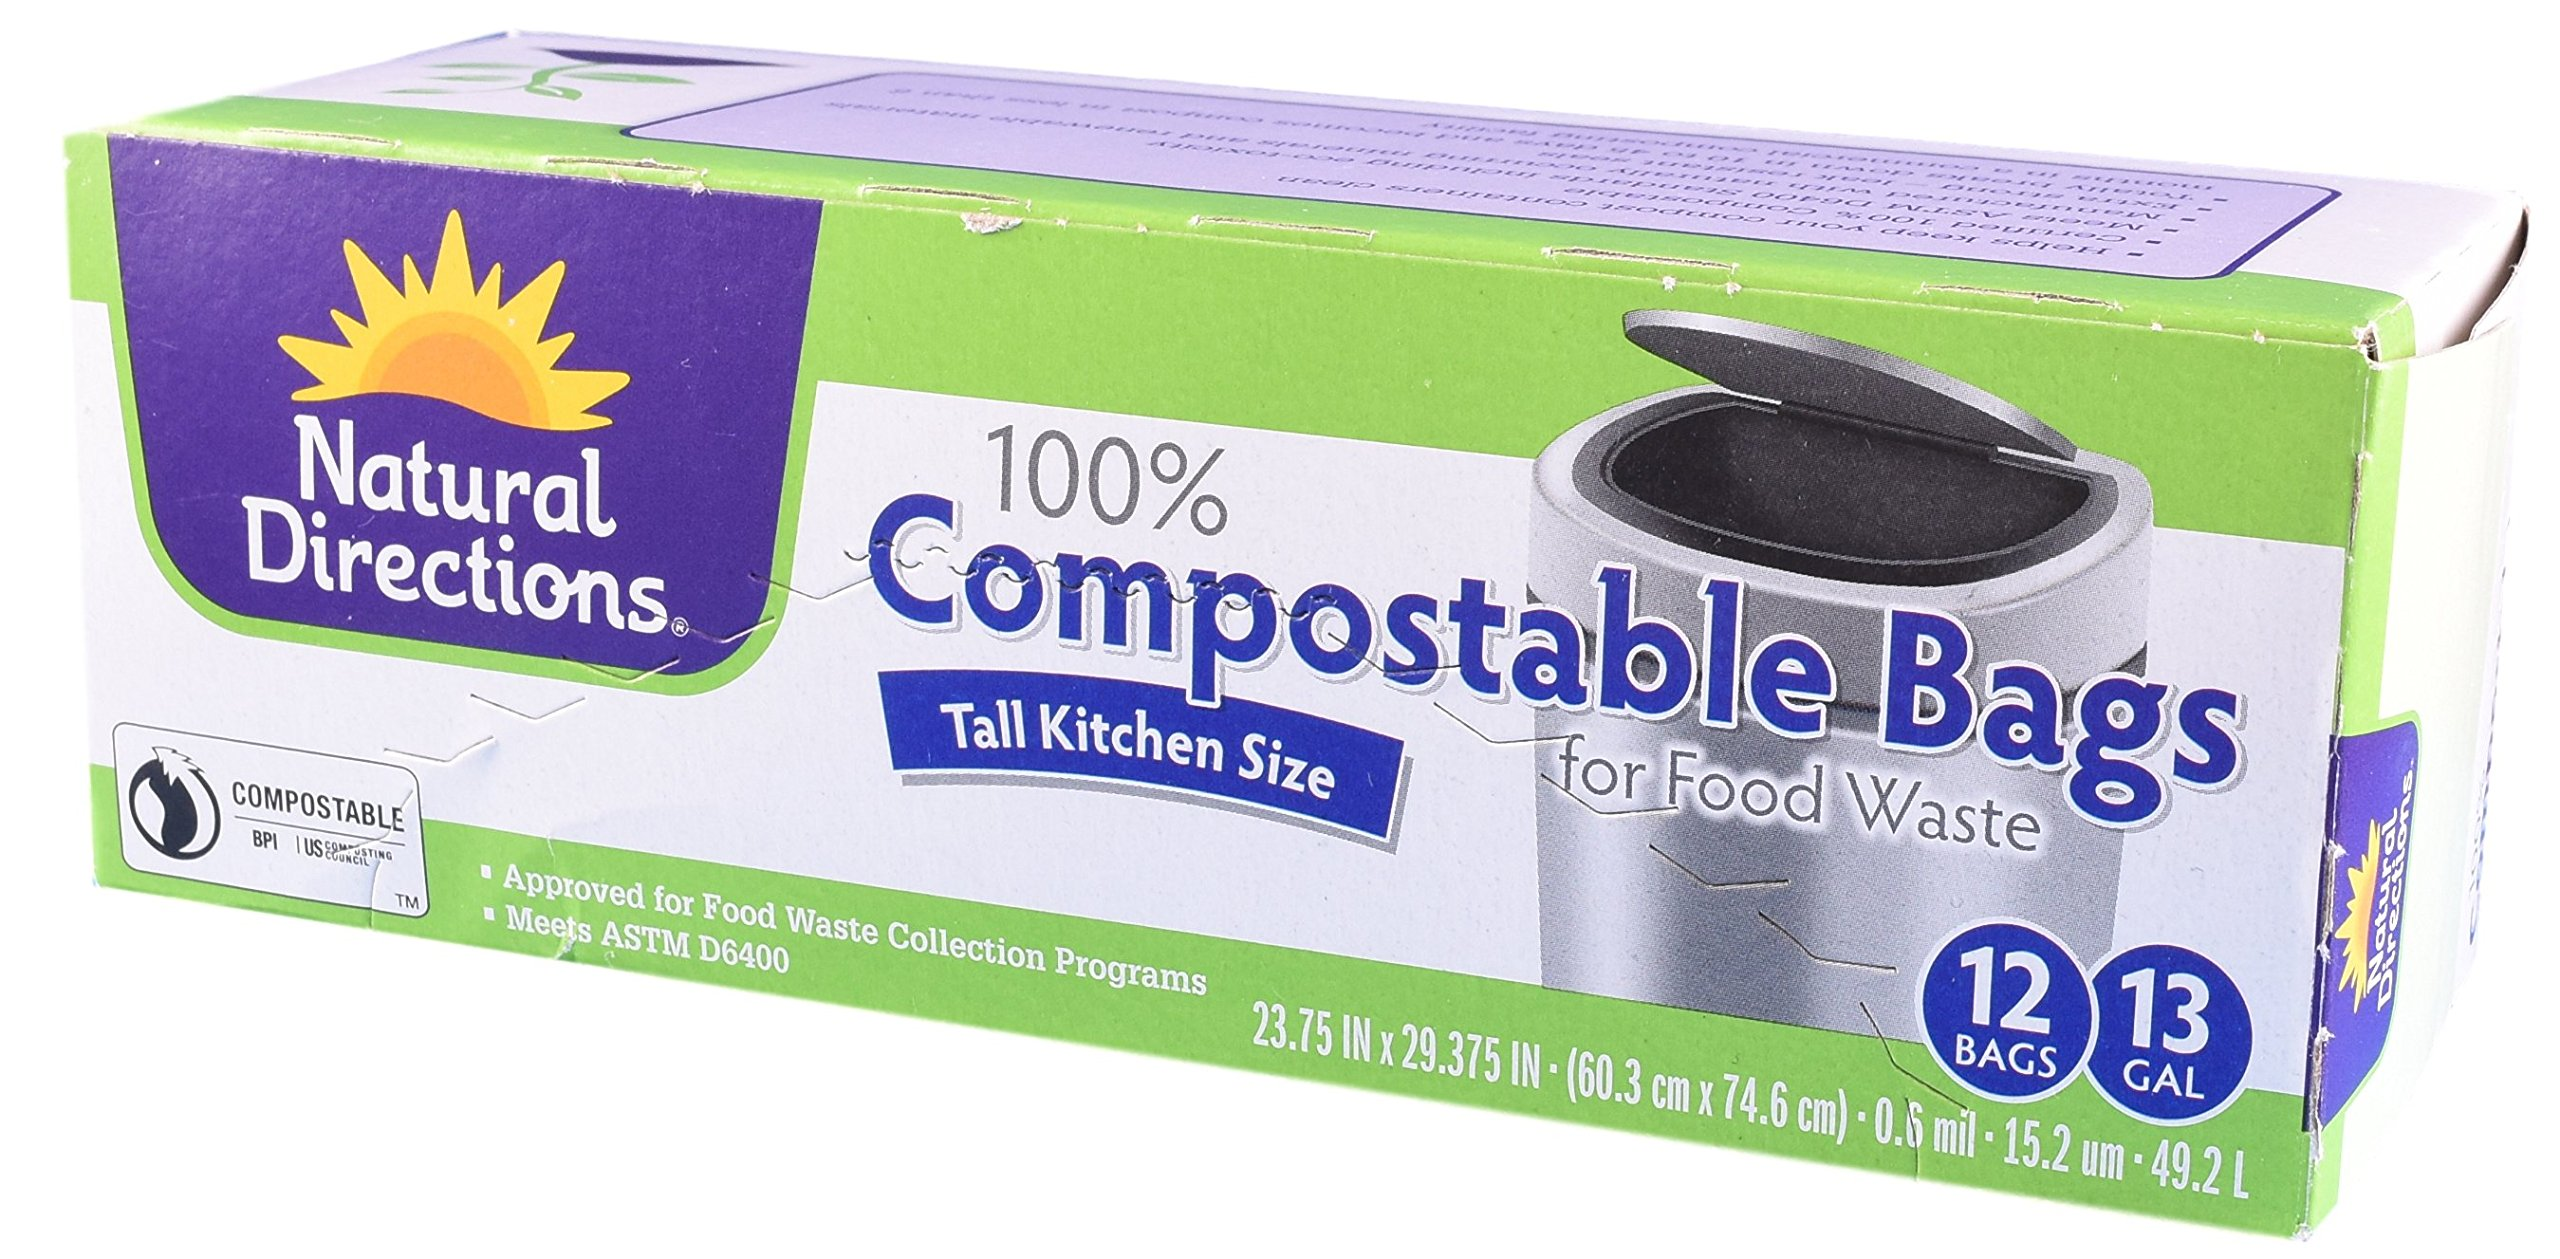 Natural Directions - Compostable Food Waste Bags - Tall Kitchen Size - 13 Gallon - 12 Bags